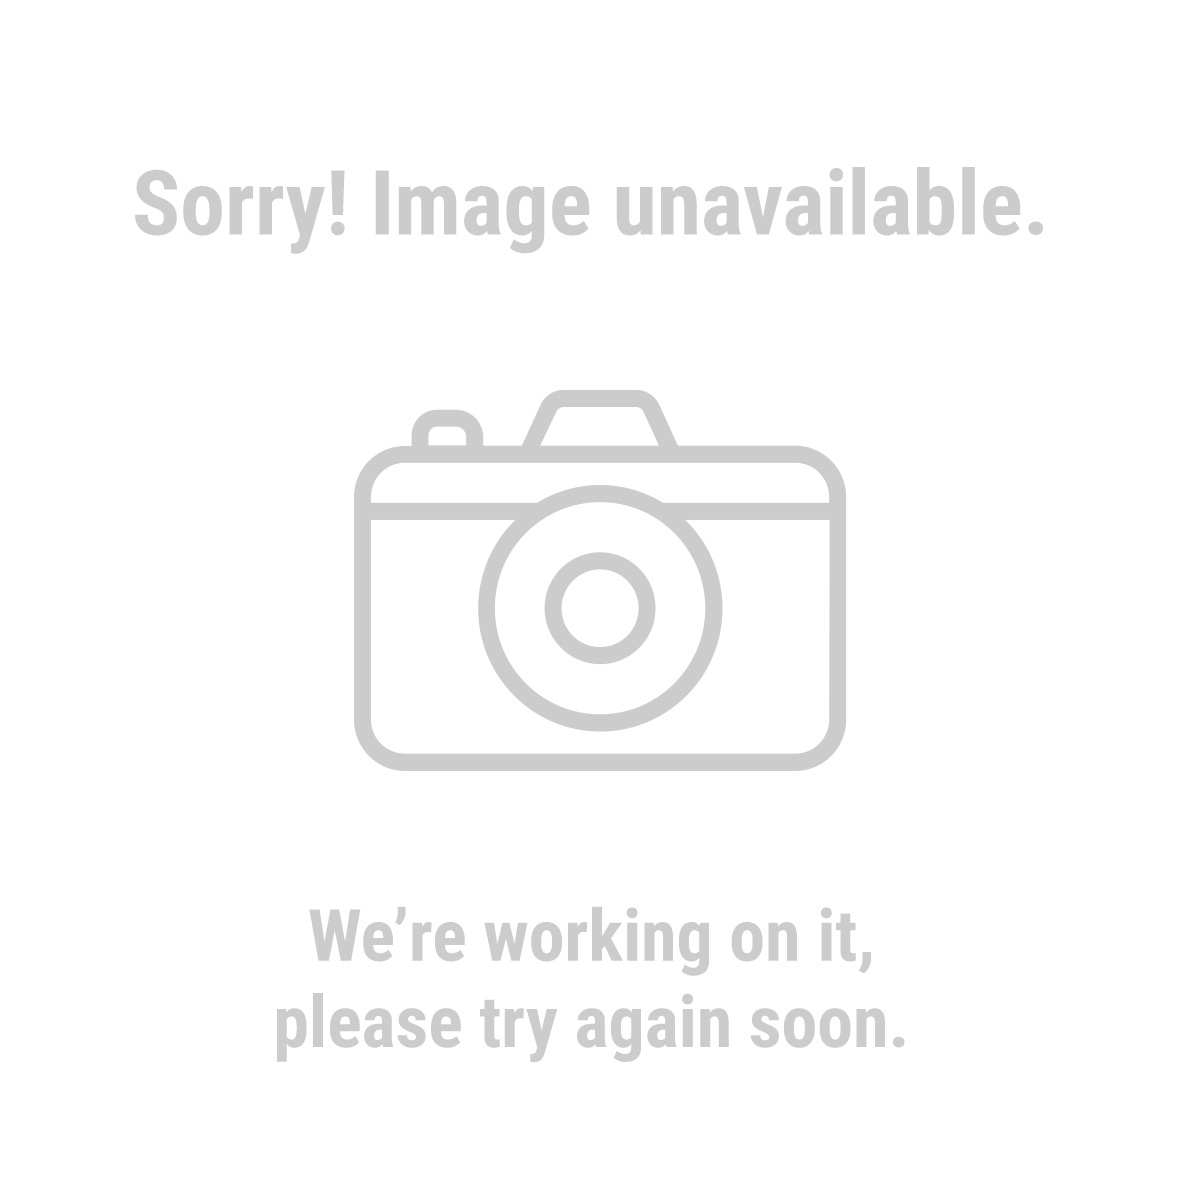 "Haul-Master 97711 3/8"" x 14 Ft. Trucker's Chain"